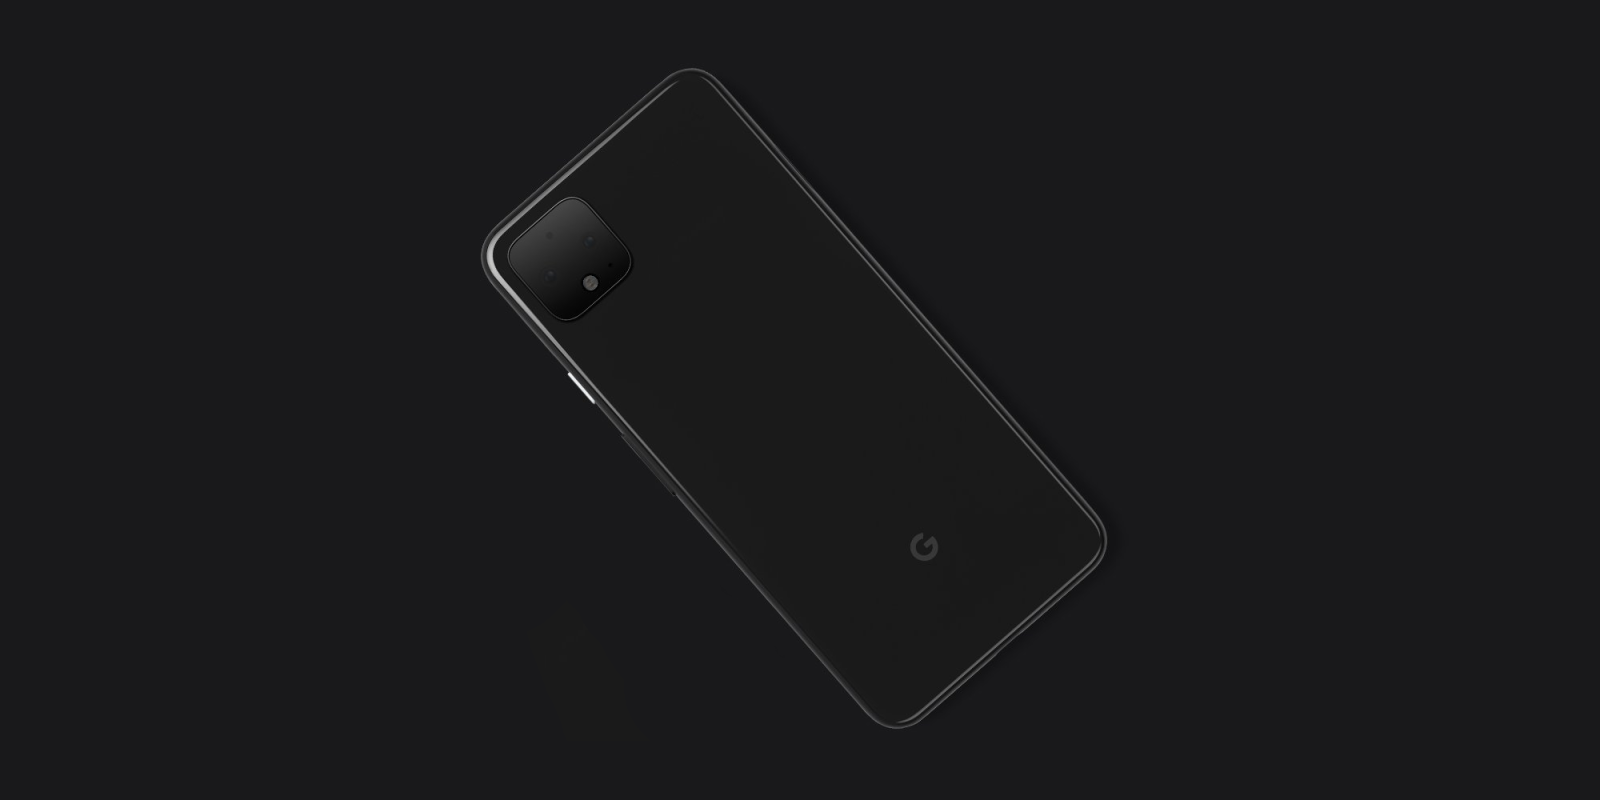 As expected, leaked Verizon timeline suggests Pixel 4 will launch in October